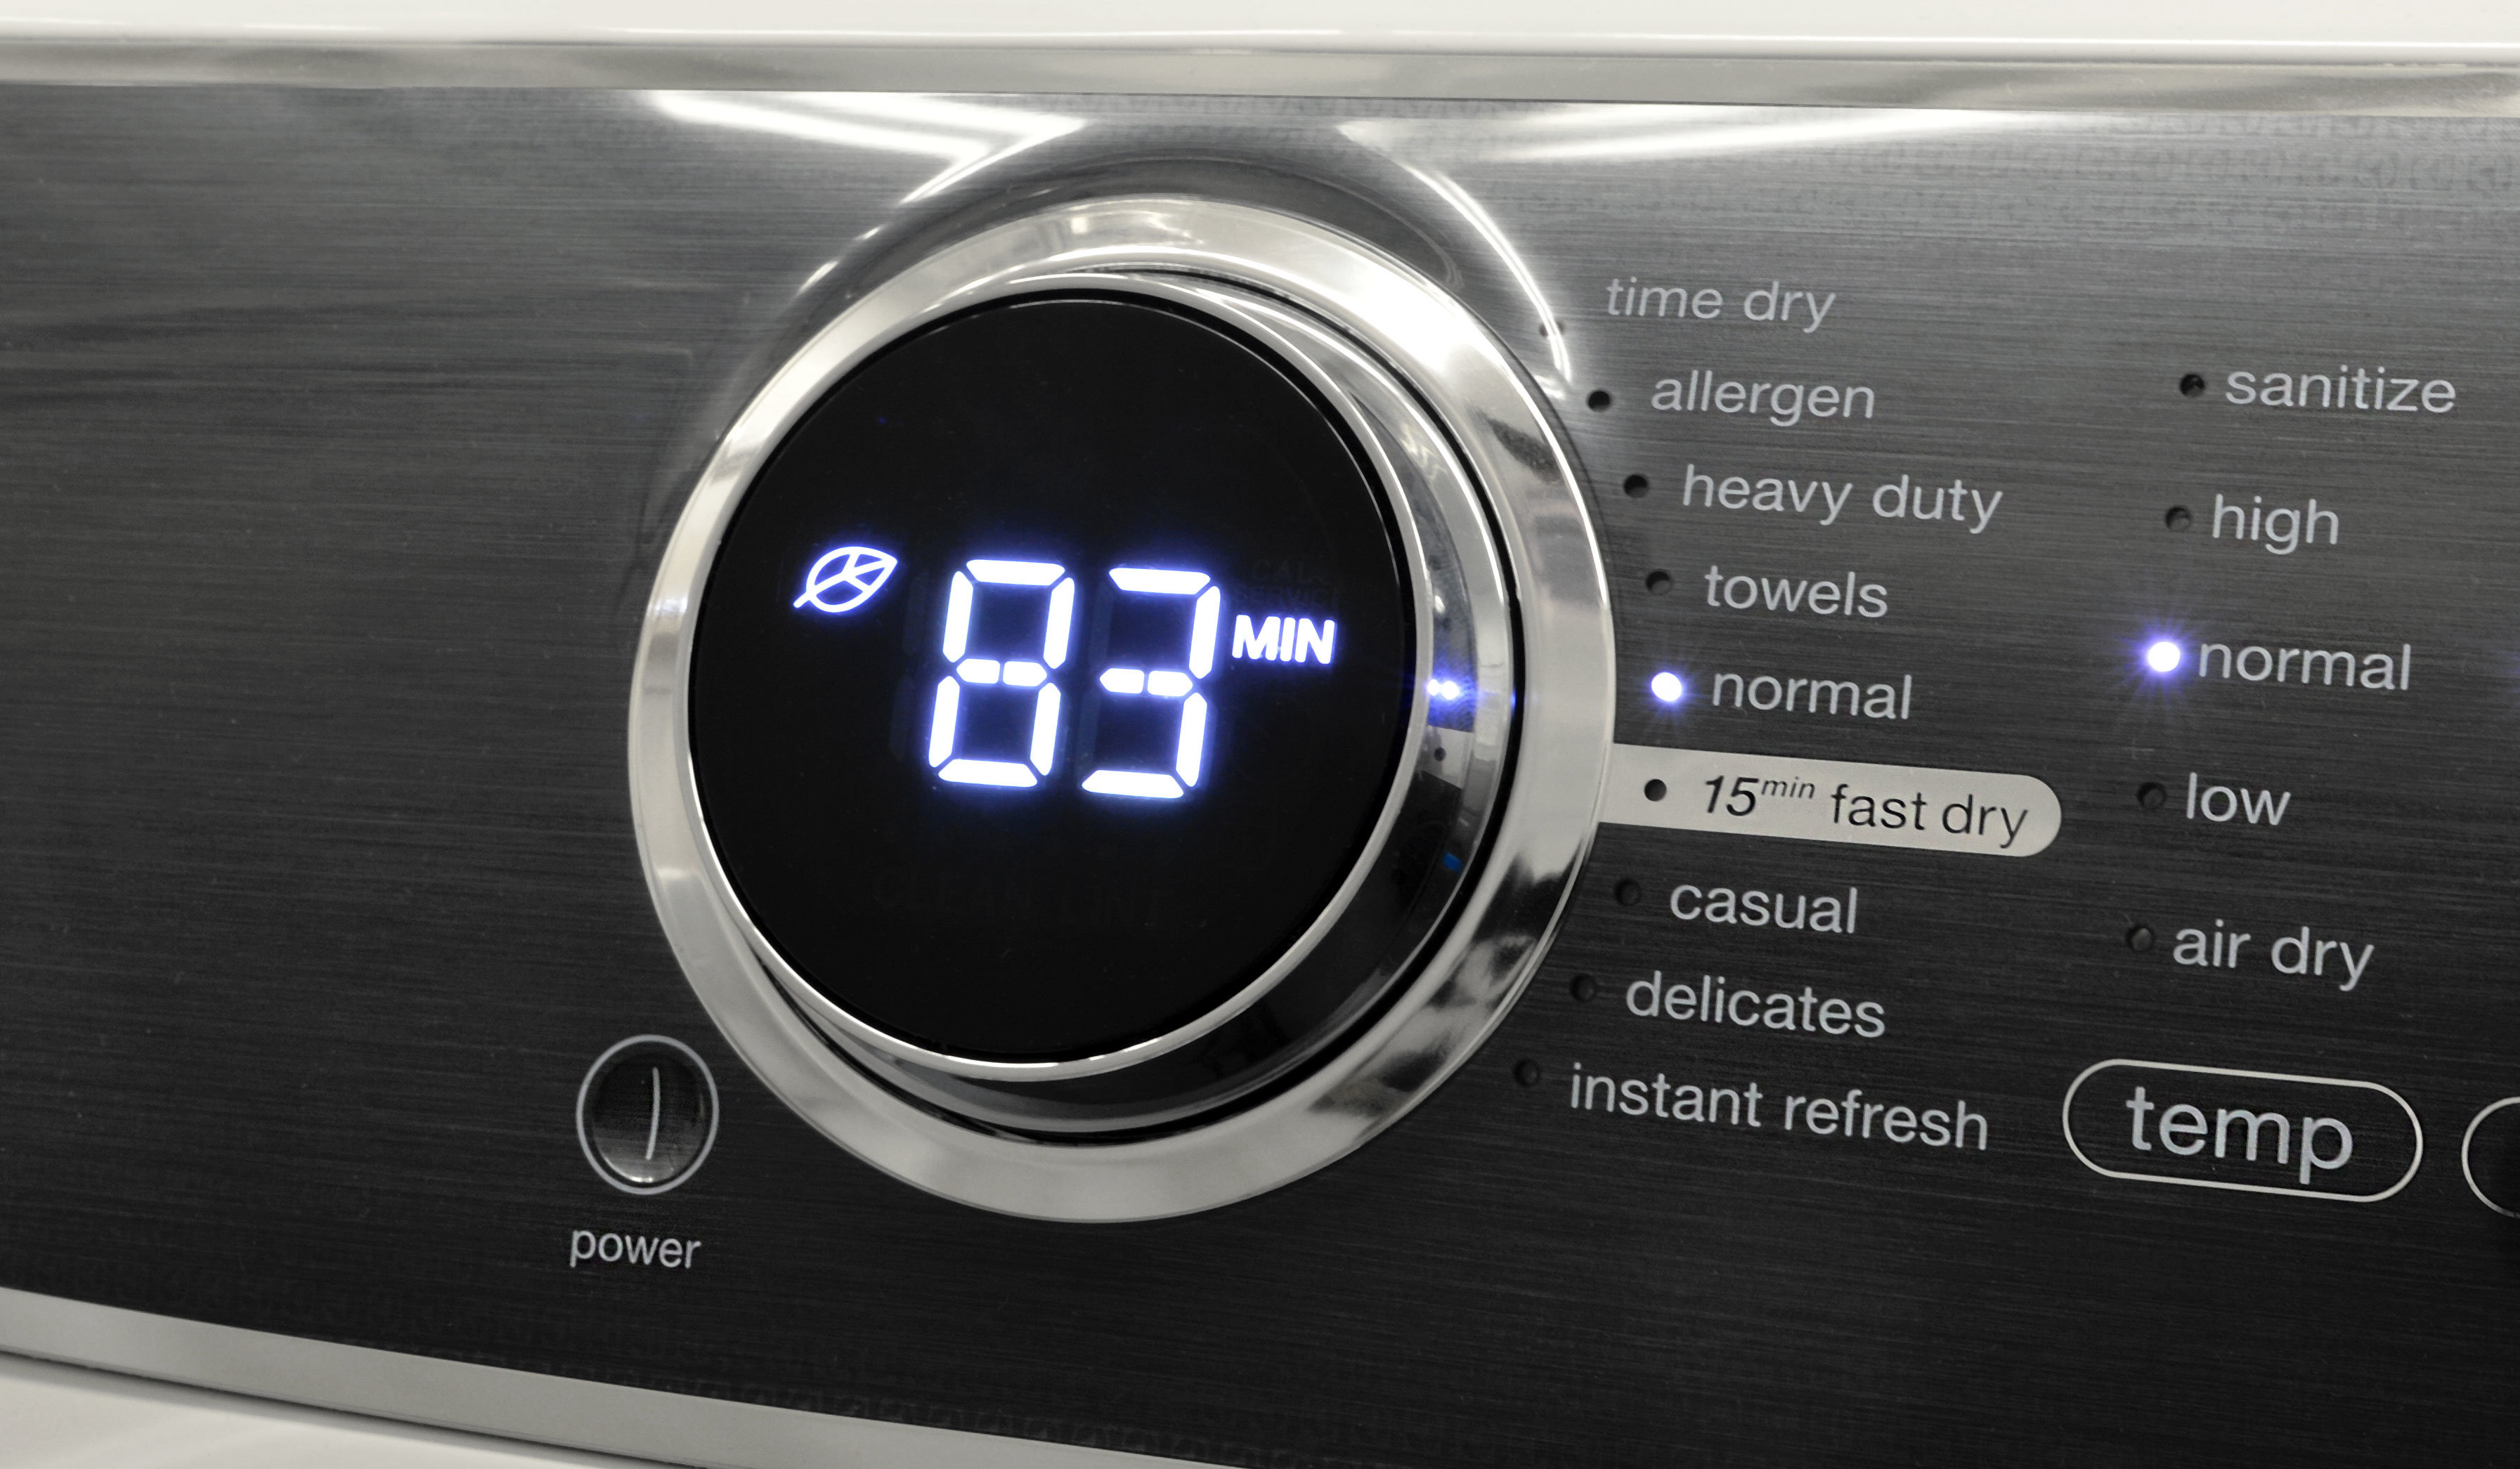 The Electrolux EFME617SIW's cycle selector blends old-school practicality with sexy modern design.